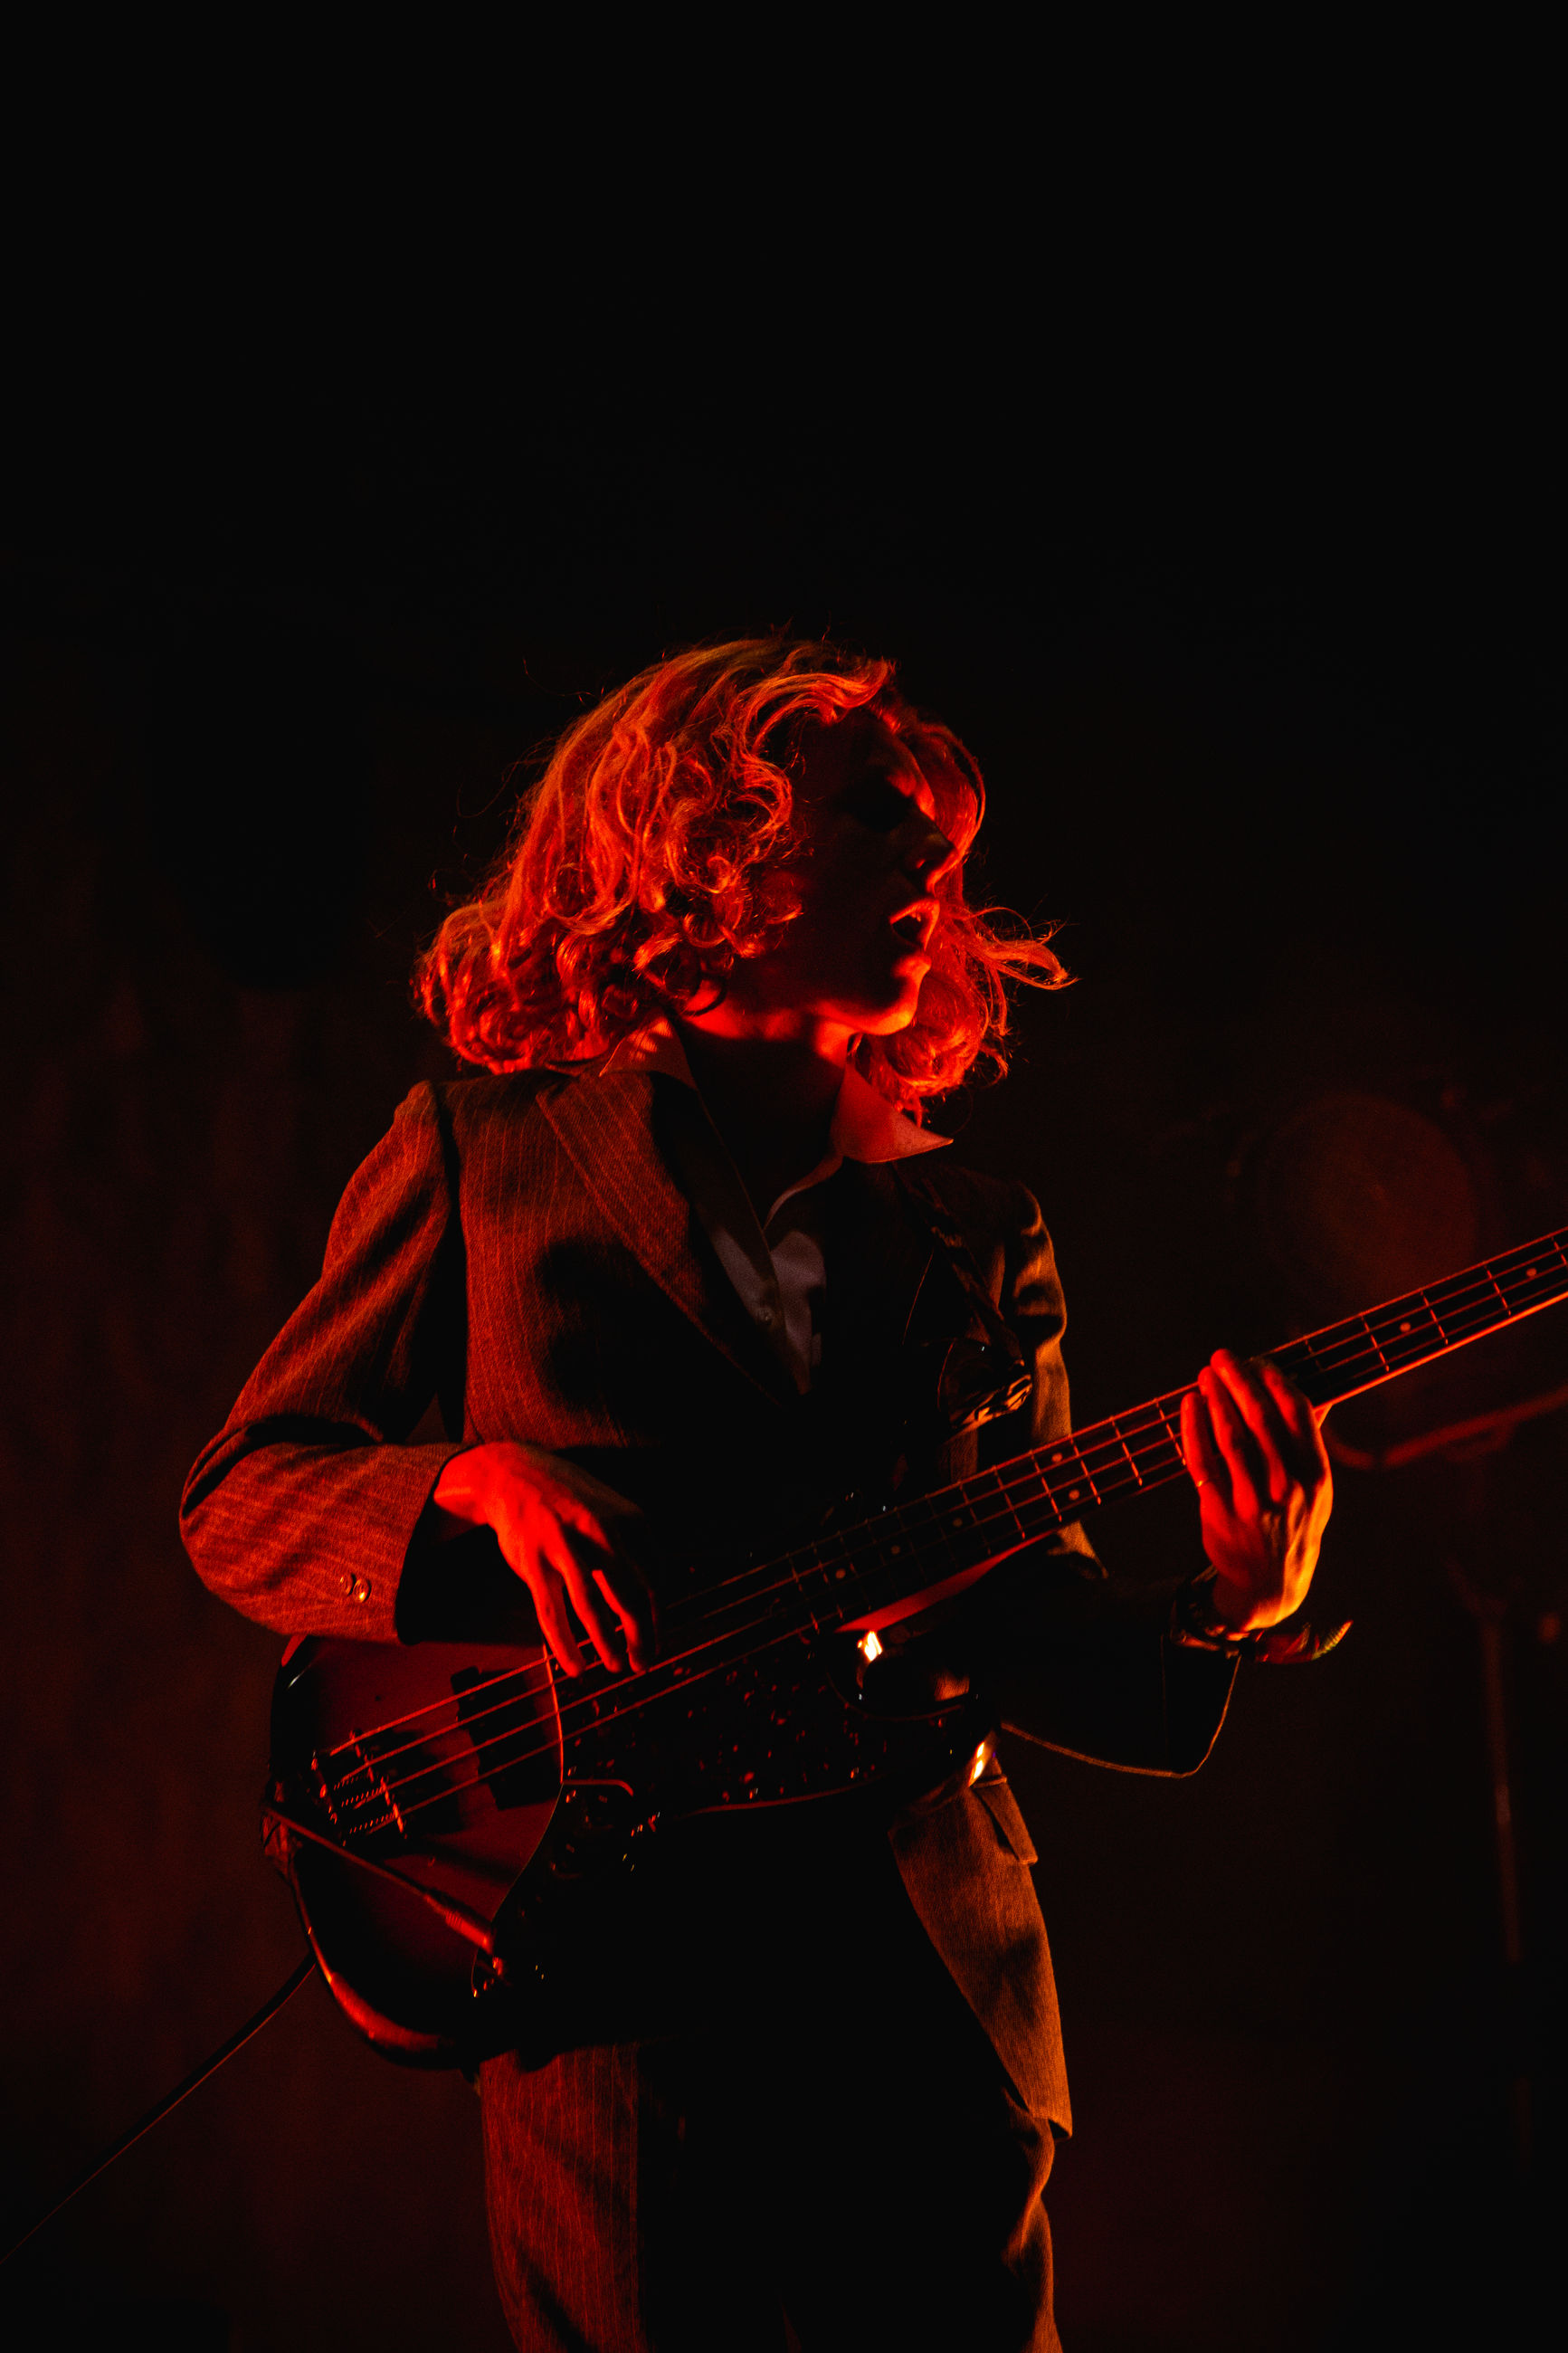 musical instrument, music, arts culture and entertainment, string instrument, playing, musical equipment, performance, guitar, artist, musician, one person, skill, real people, event, stage, stage - performance space, guitarist, night, holding, nightlife, concert, popular music concert, entertainment occupation, rock music, electric guitar, black background